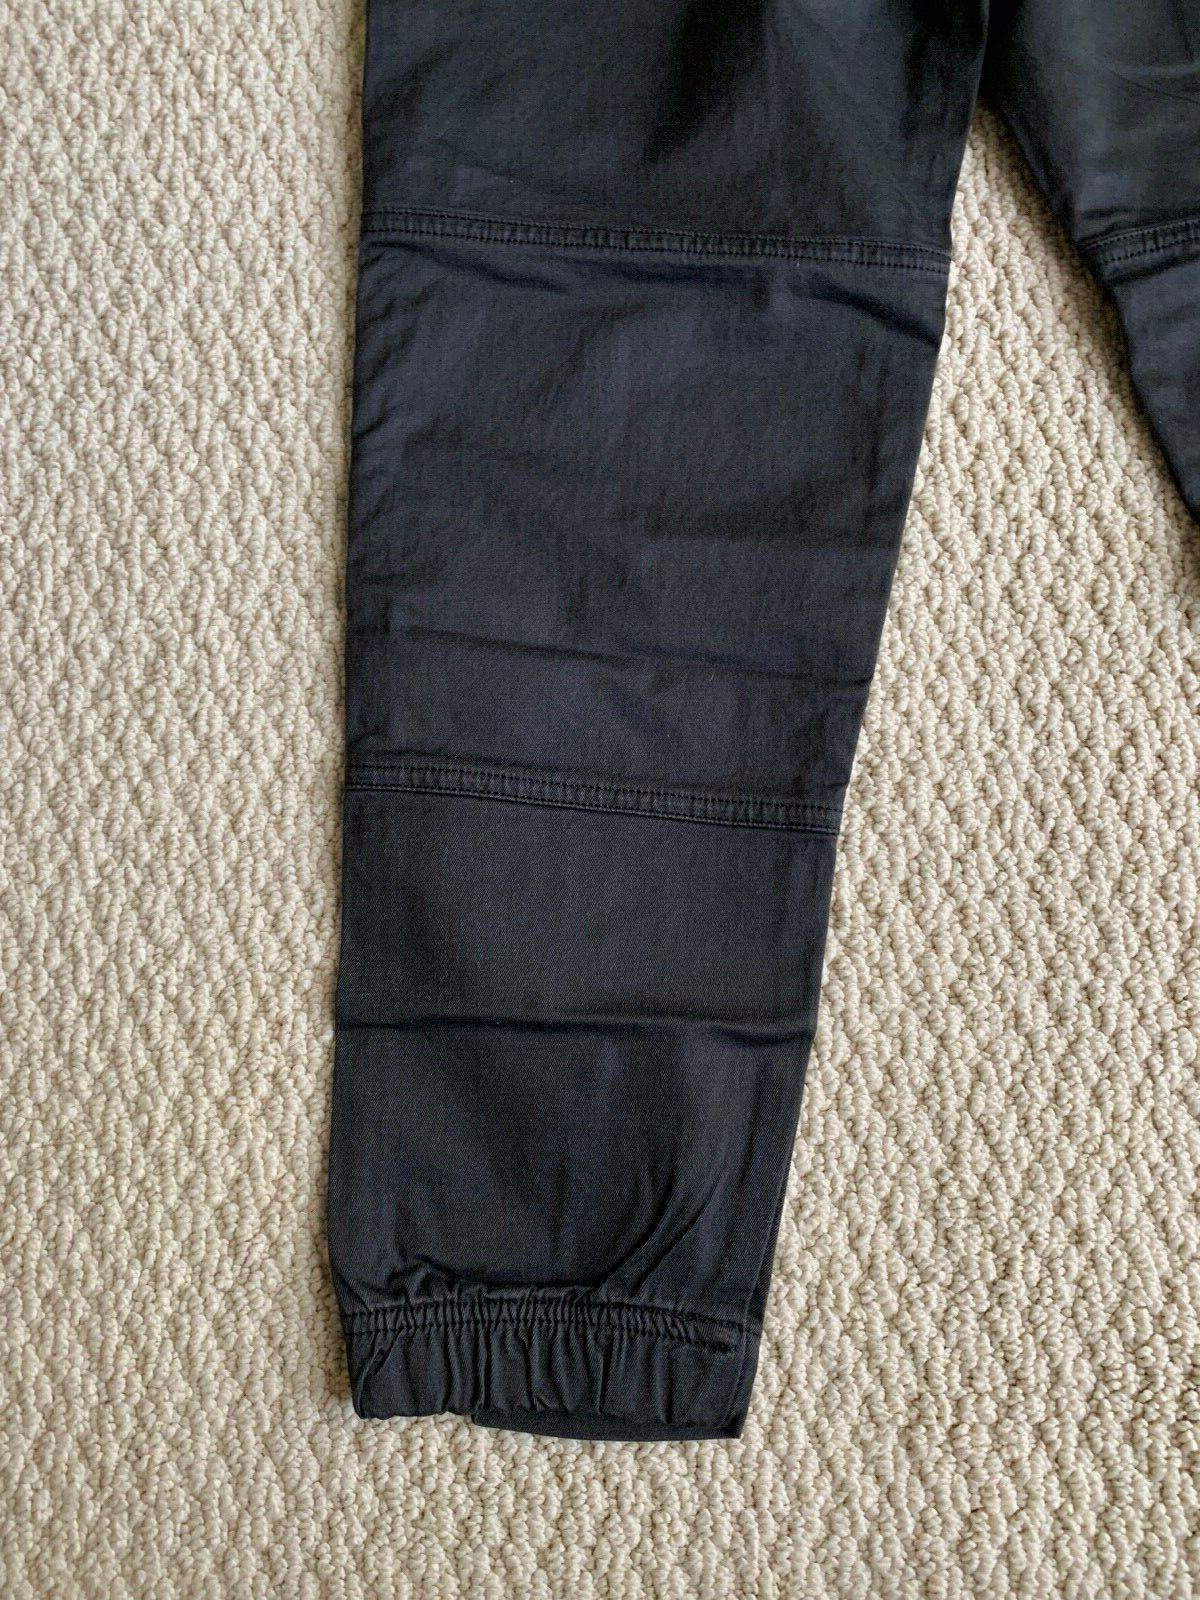 NWT Men's Charcoal Utility Cargo Tapered Jogger SIZES